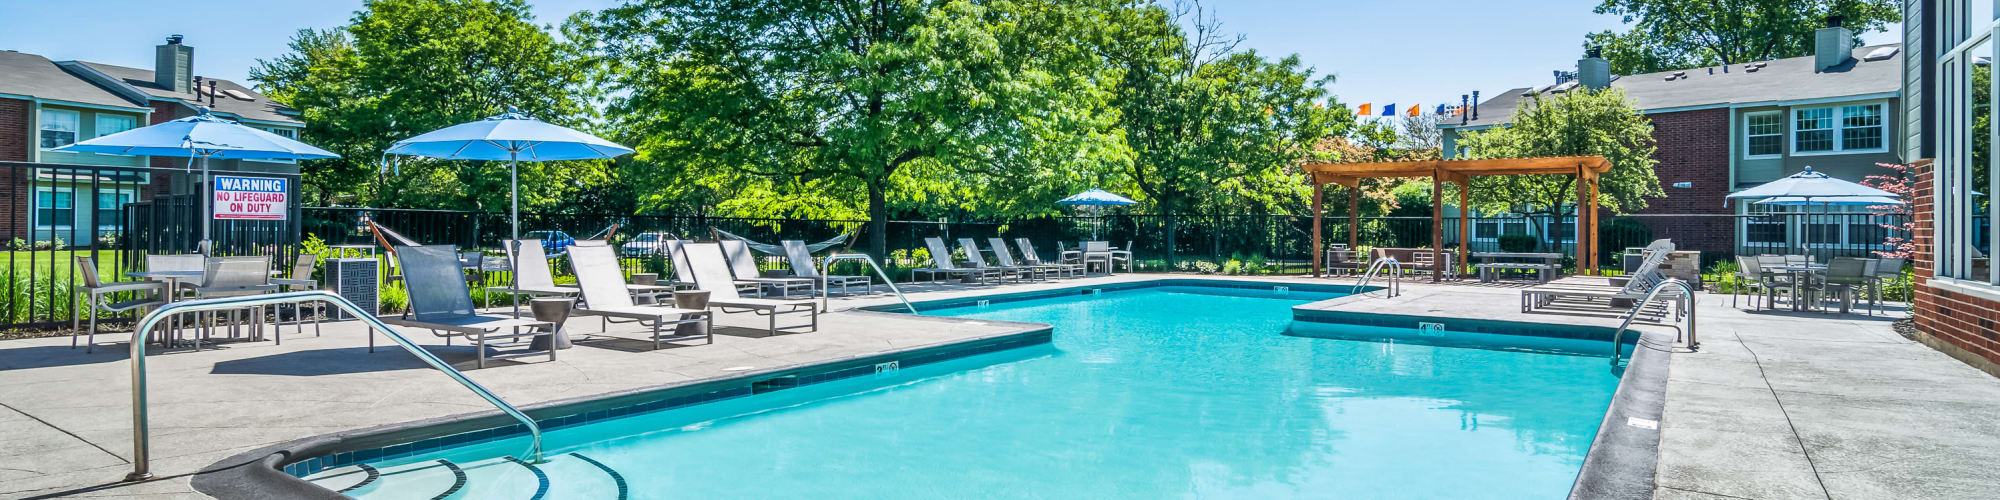 View the wonderful photos of the apartment facility in Naperville